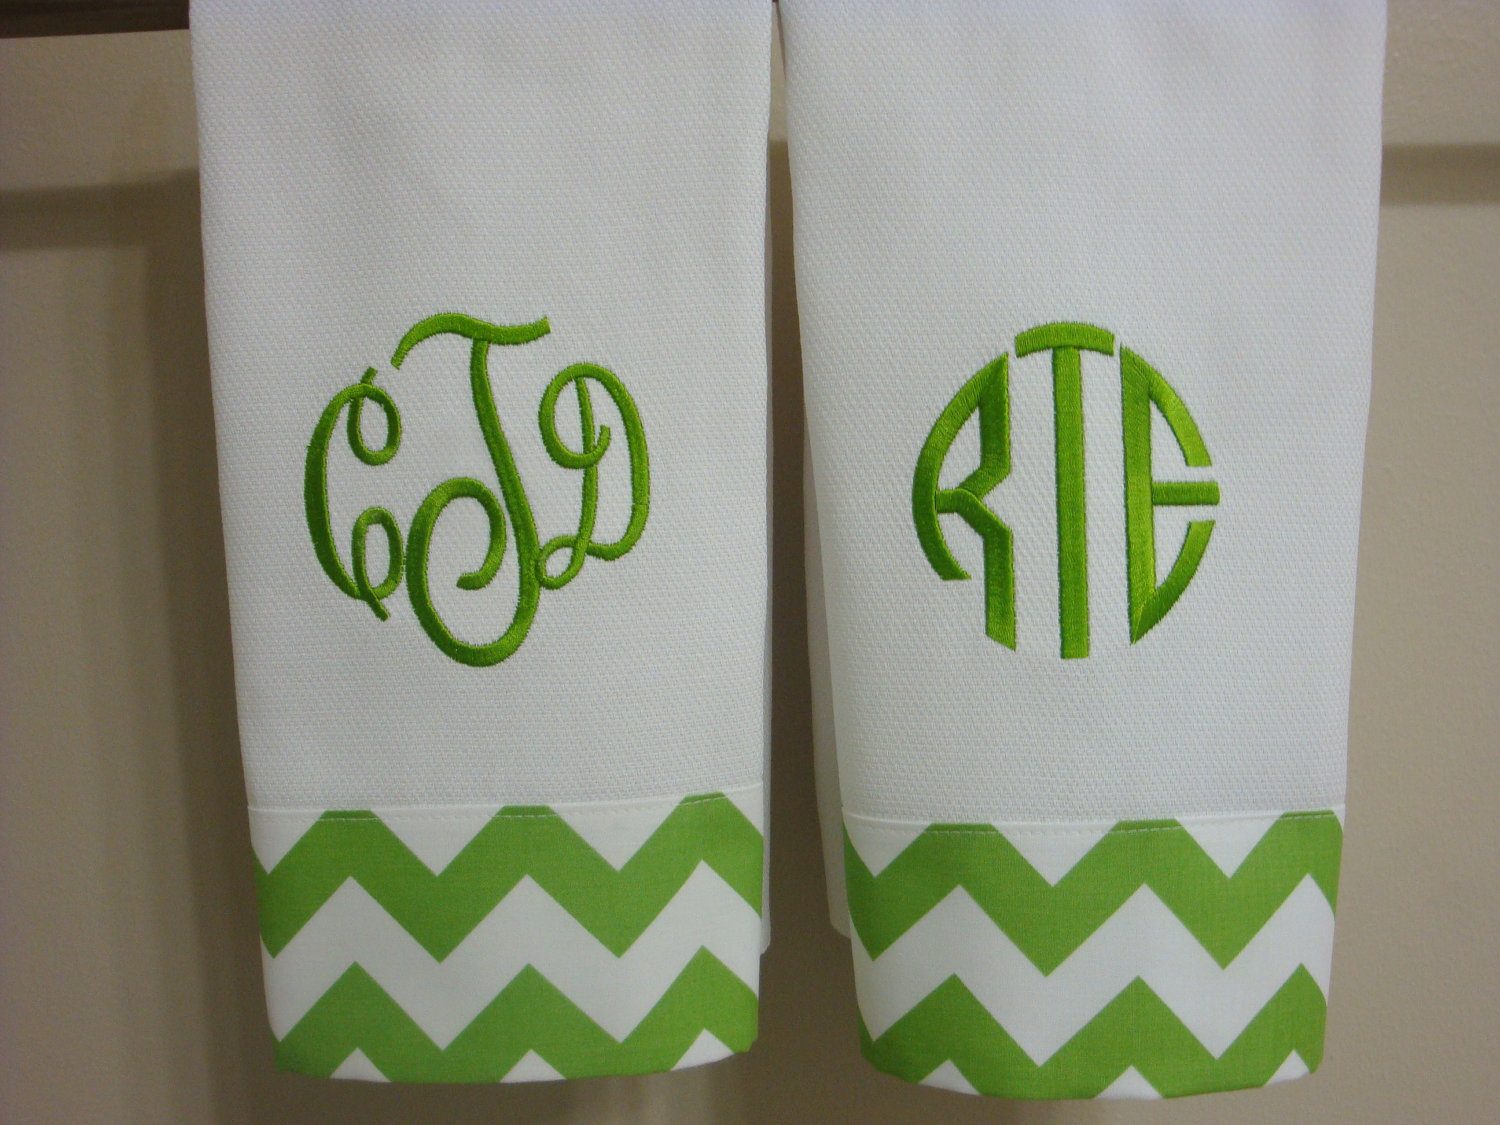 Admirable monogrammed hand towels with Decorative logo pattern towel for bathing Ideas